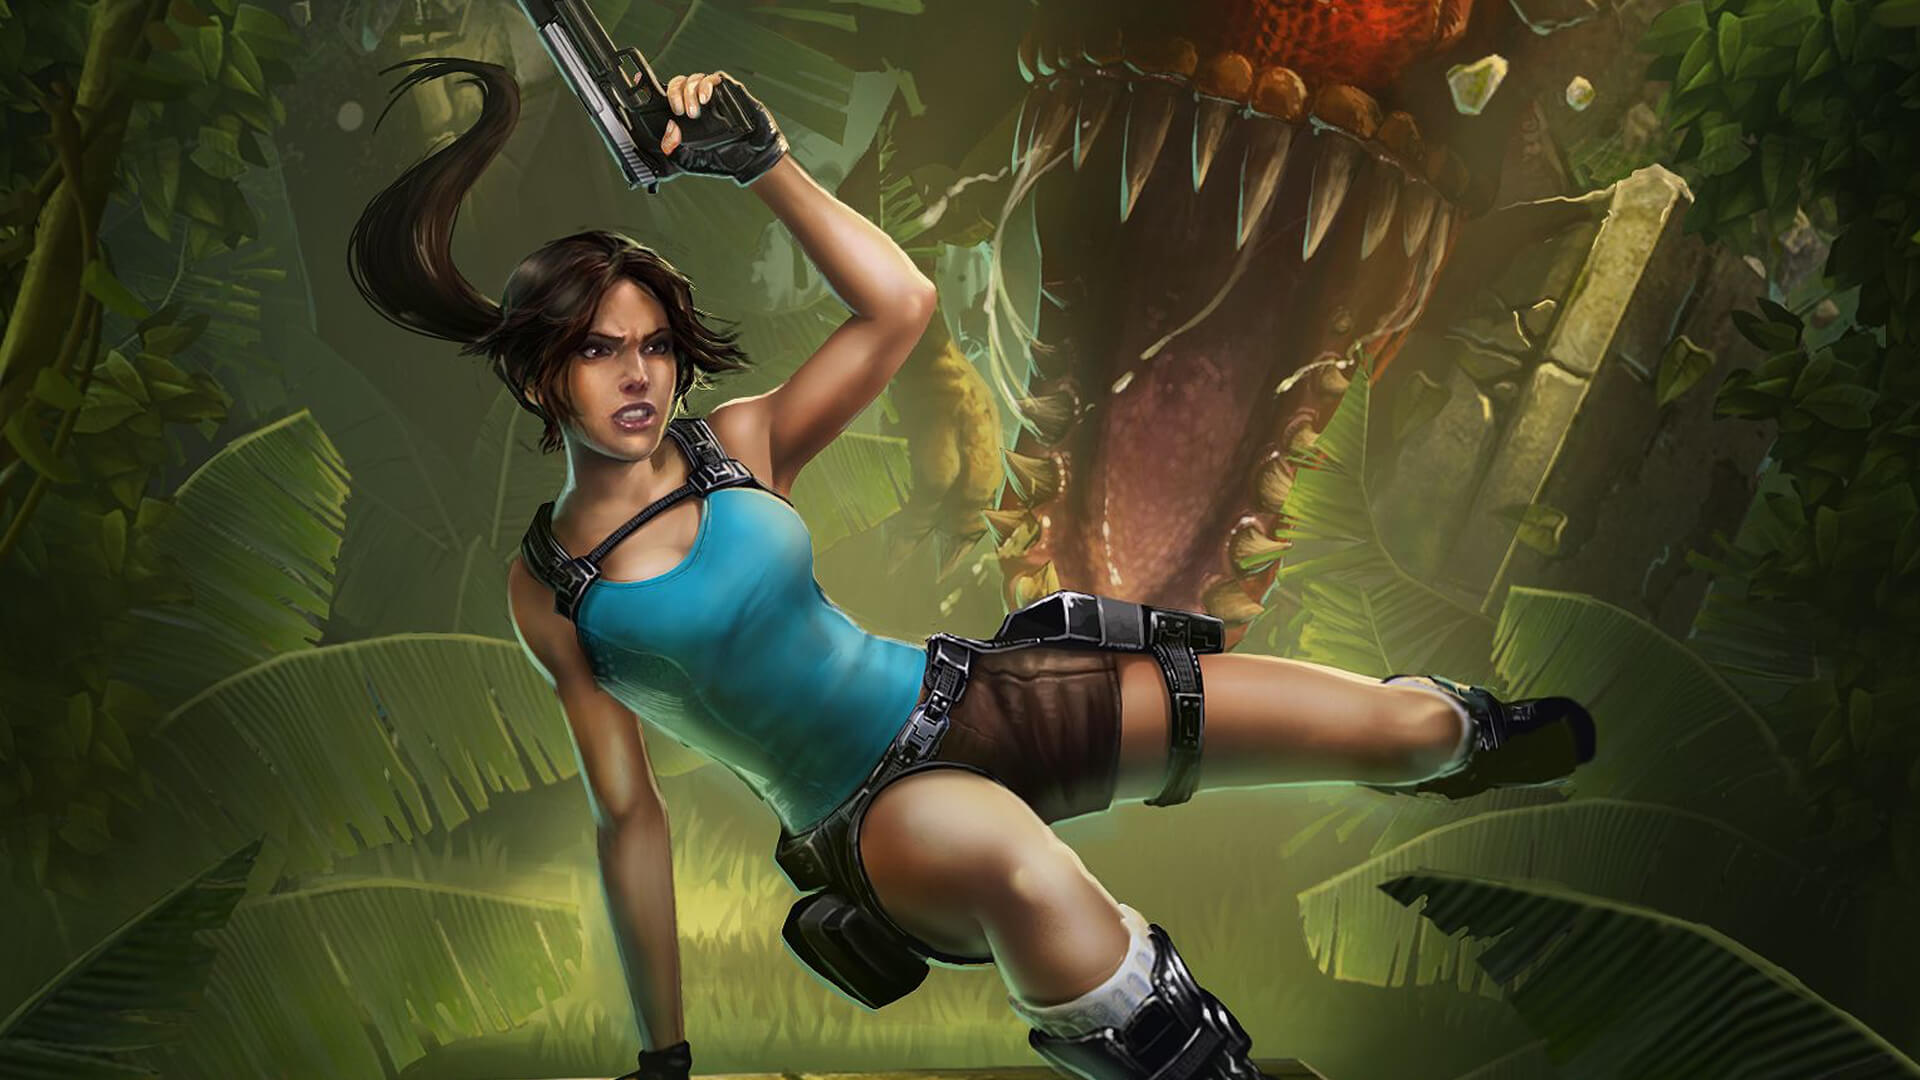 Laura croft get banged by monsters naked images